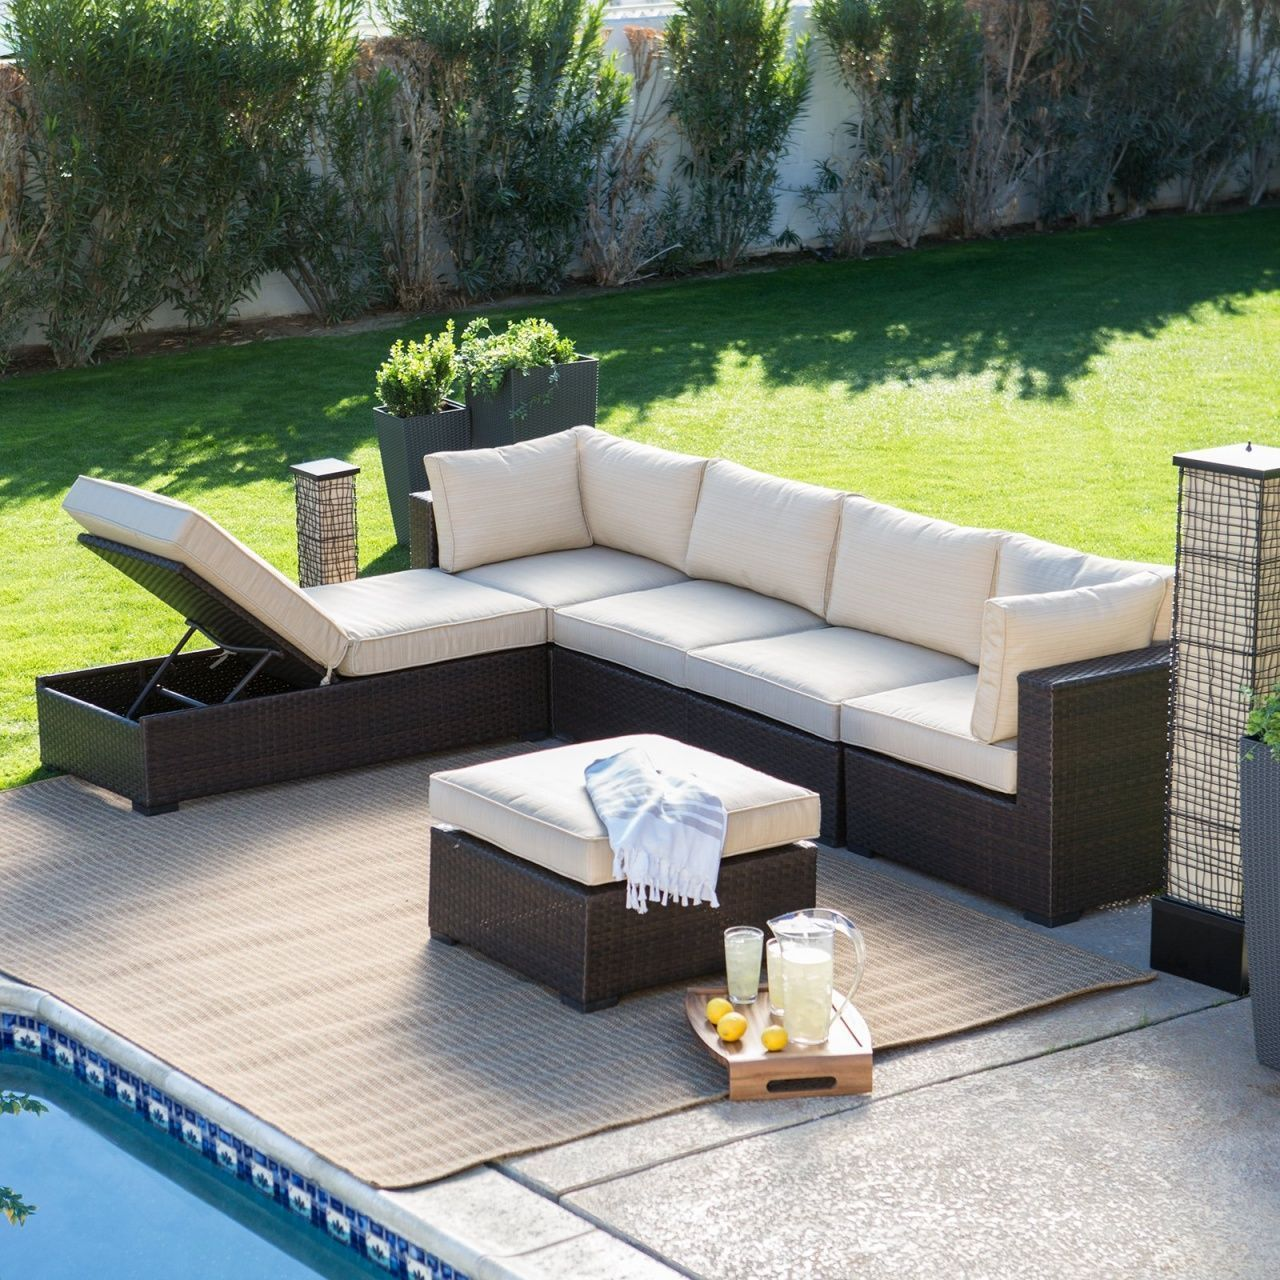 Jcpenney Patio Furniture Clearance 70 Off Clearance Furniture